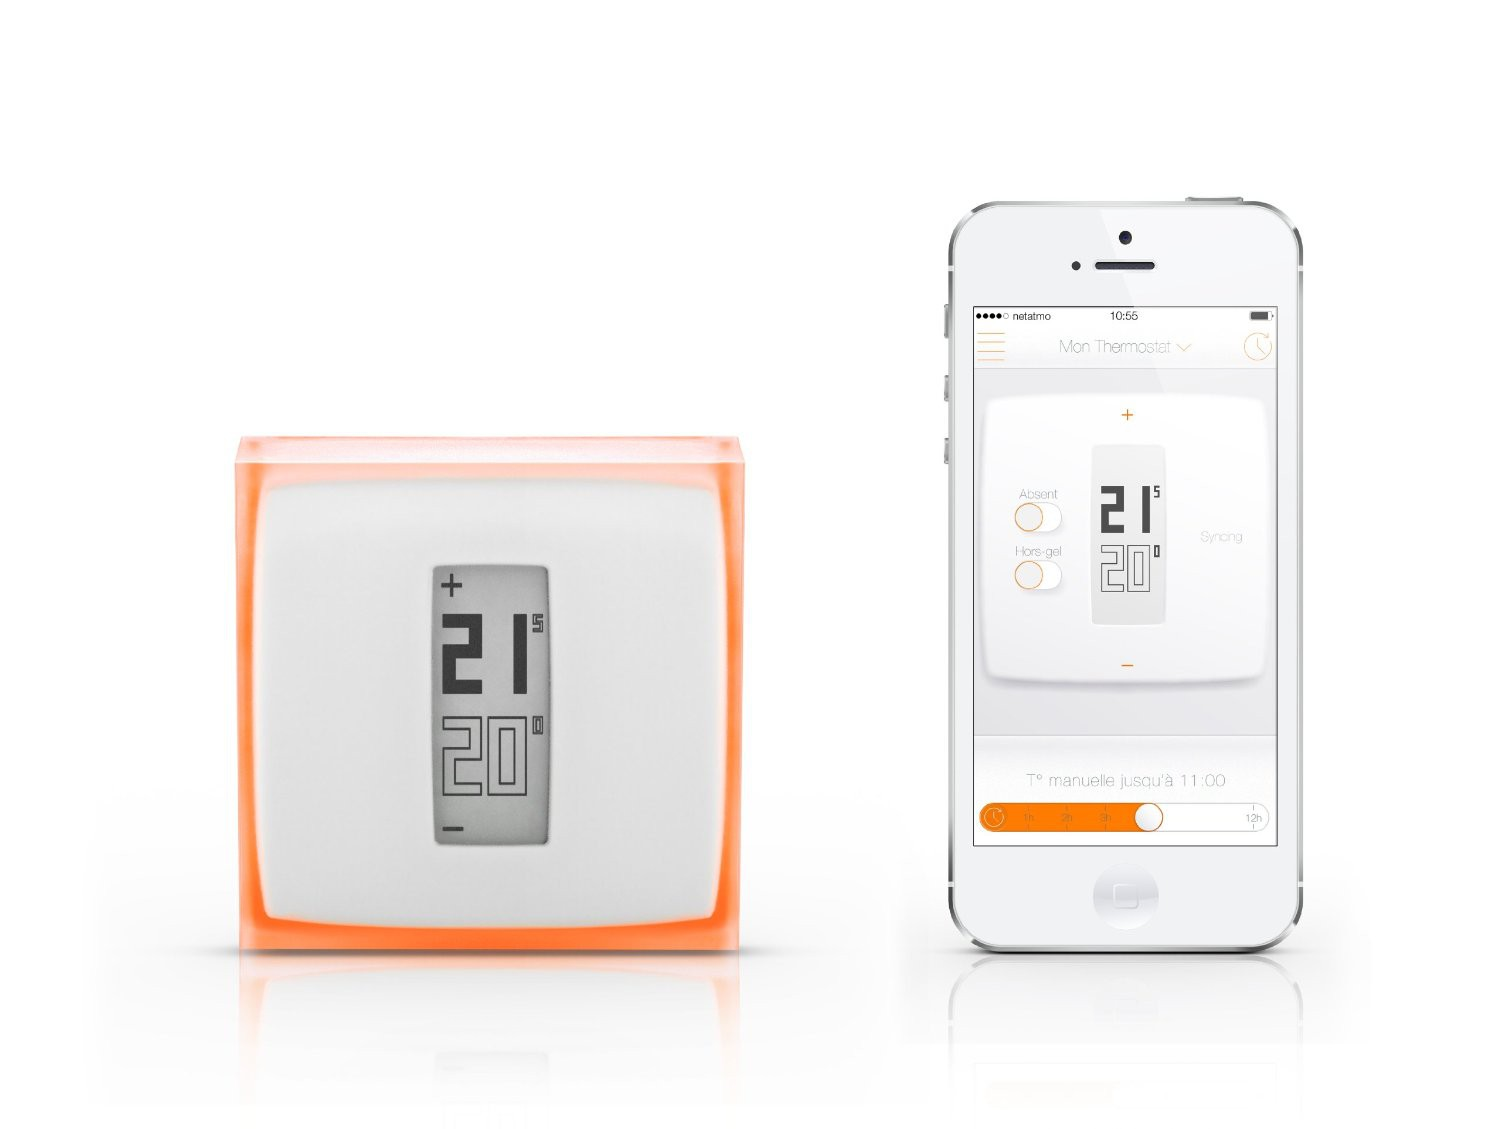 Netatmo Thermostat Steuerung Iphone Smartphone Android Smart Home